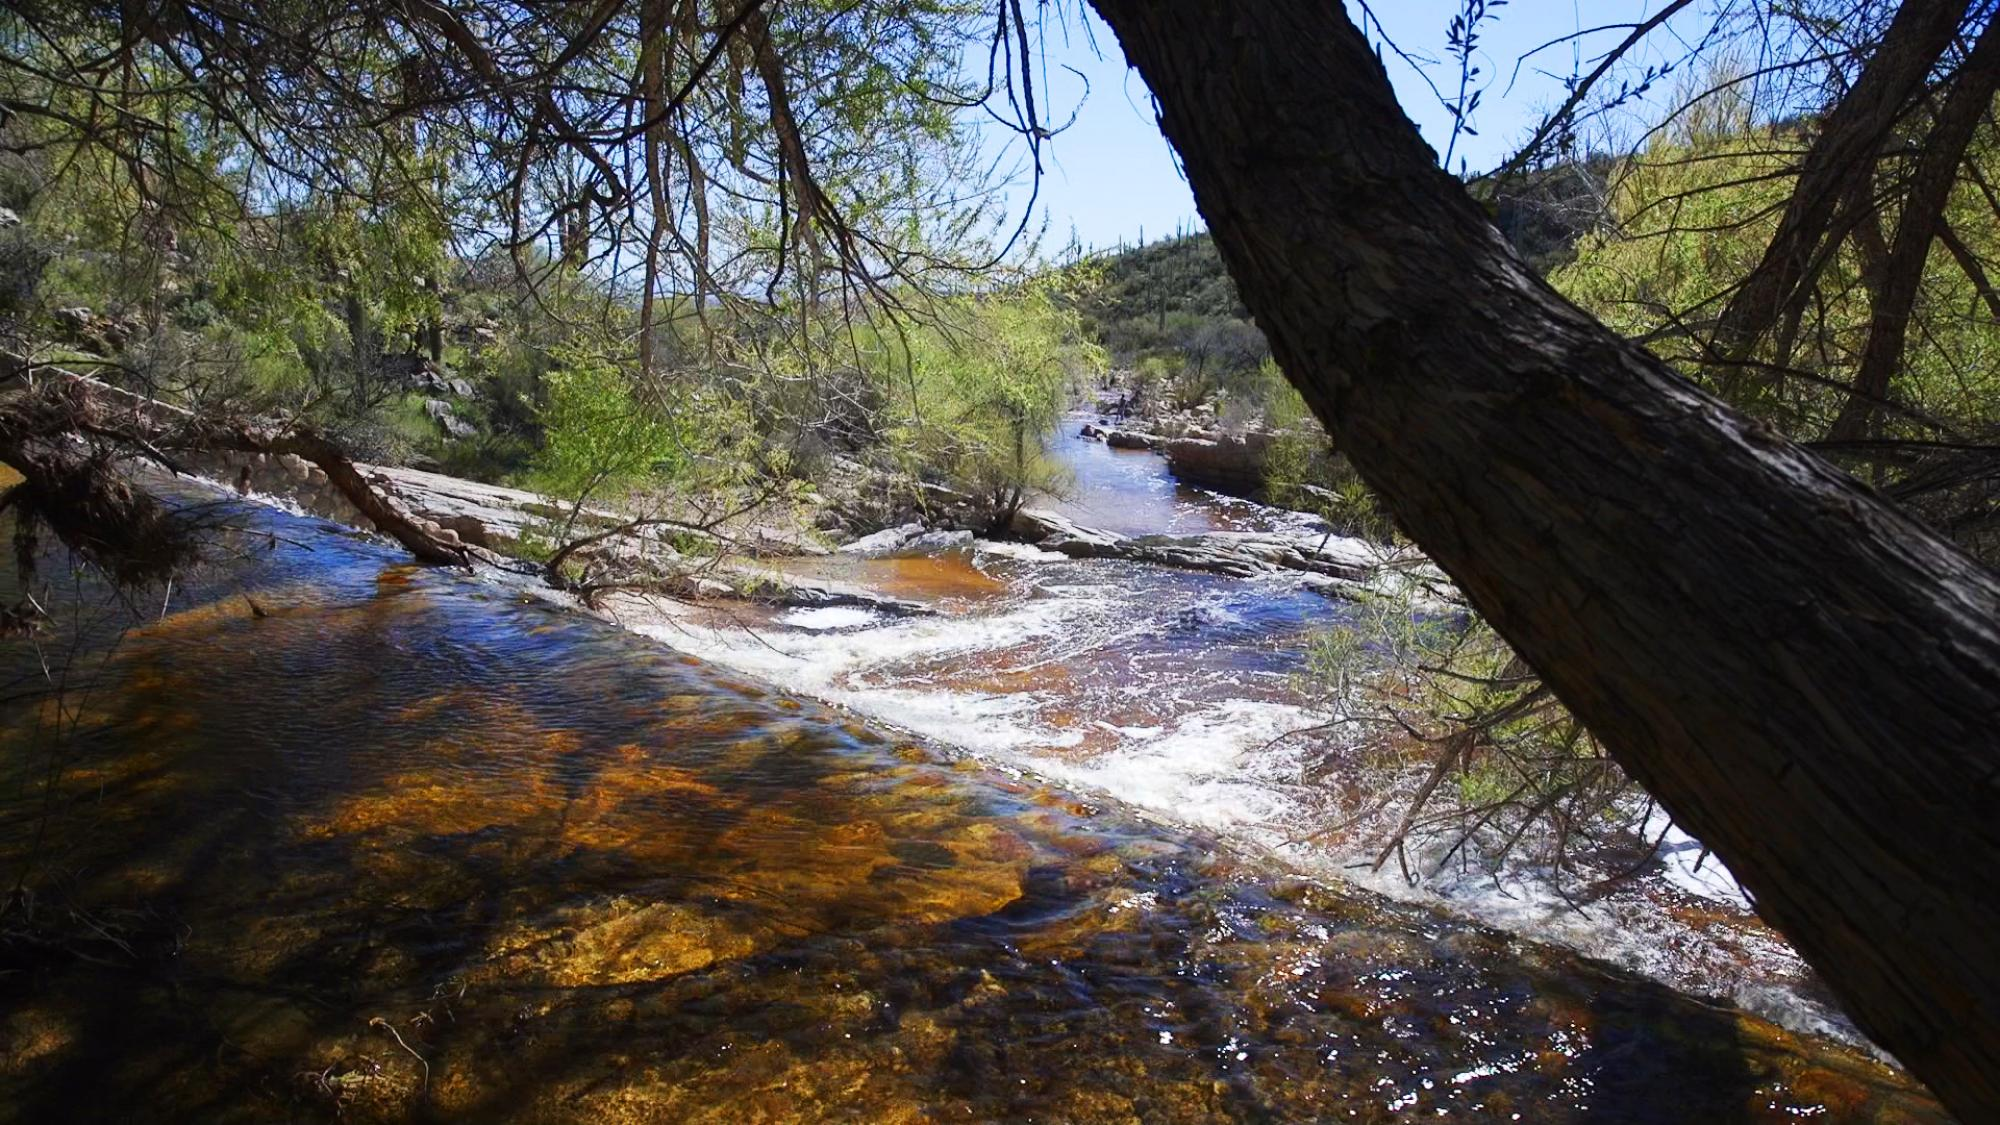 Similar to the Himalaya region, winter precipitation is an important source of water for the Southwestern U.S. Recent snowfall and rain resulted in water flowing over the Sabino Dam in March, creating a seasonal reservoir above Sabino Creek.